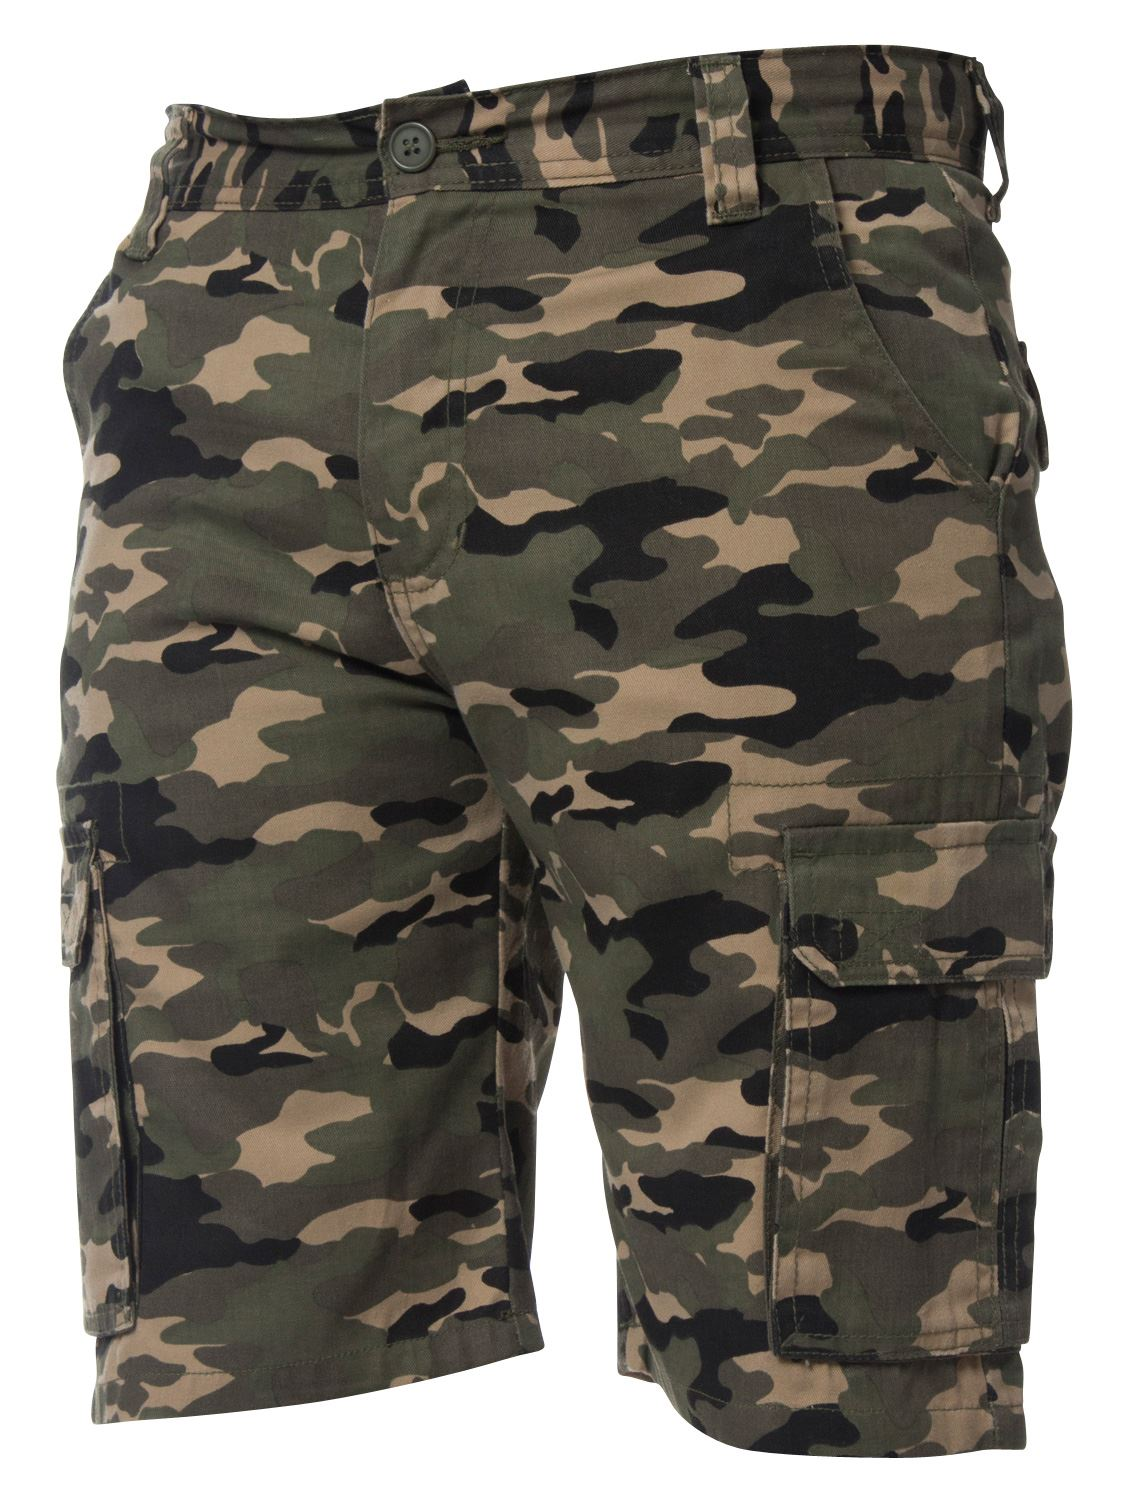 Kruze-Jeans-Mens-Army-Combat-Shorts-Camouflage-Cargo-Casual-Camo-Work-Half-Pants thumbnail 14